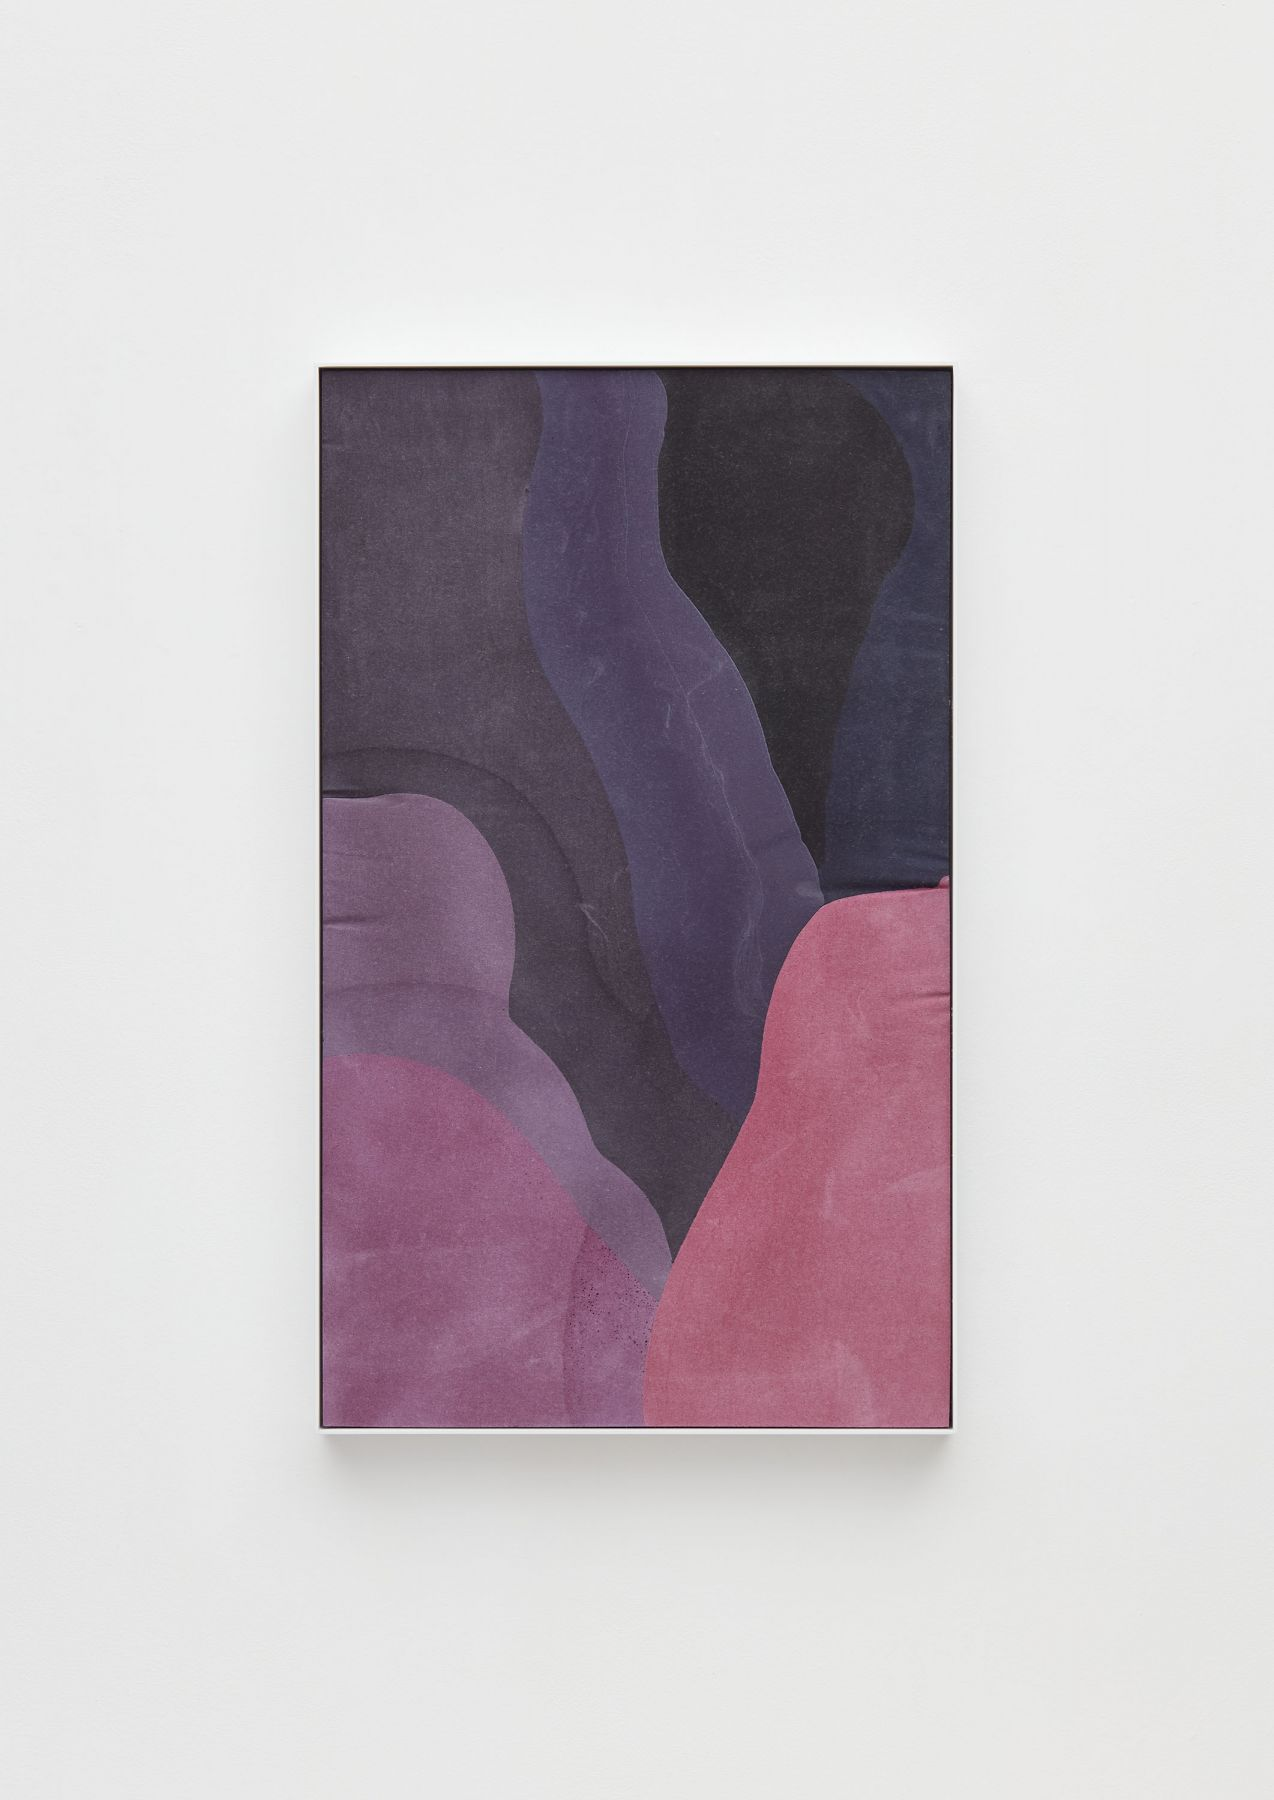 a purple abstract curving painting by the contemporary artist anthony pearson